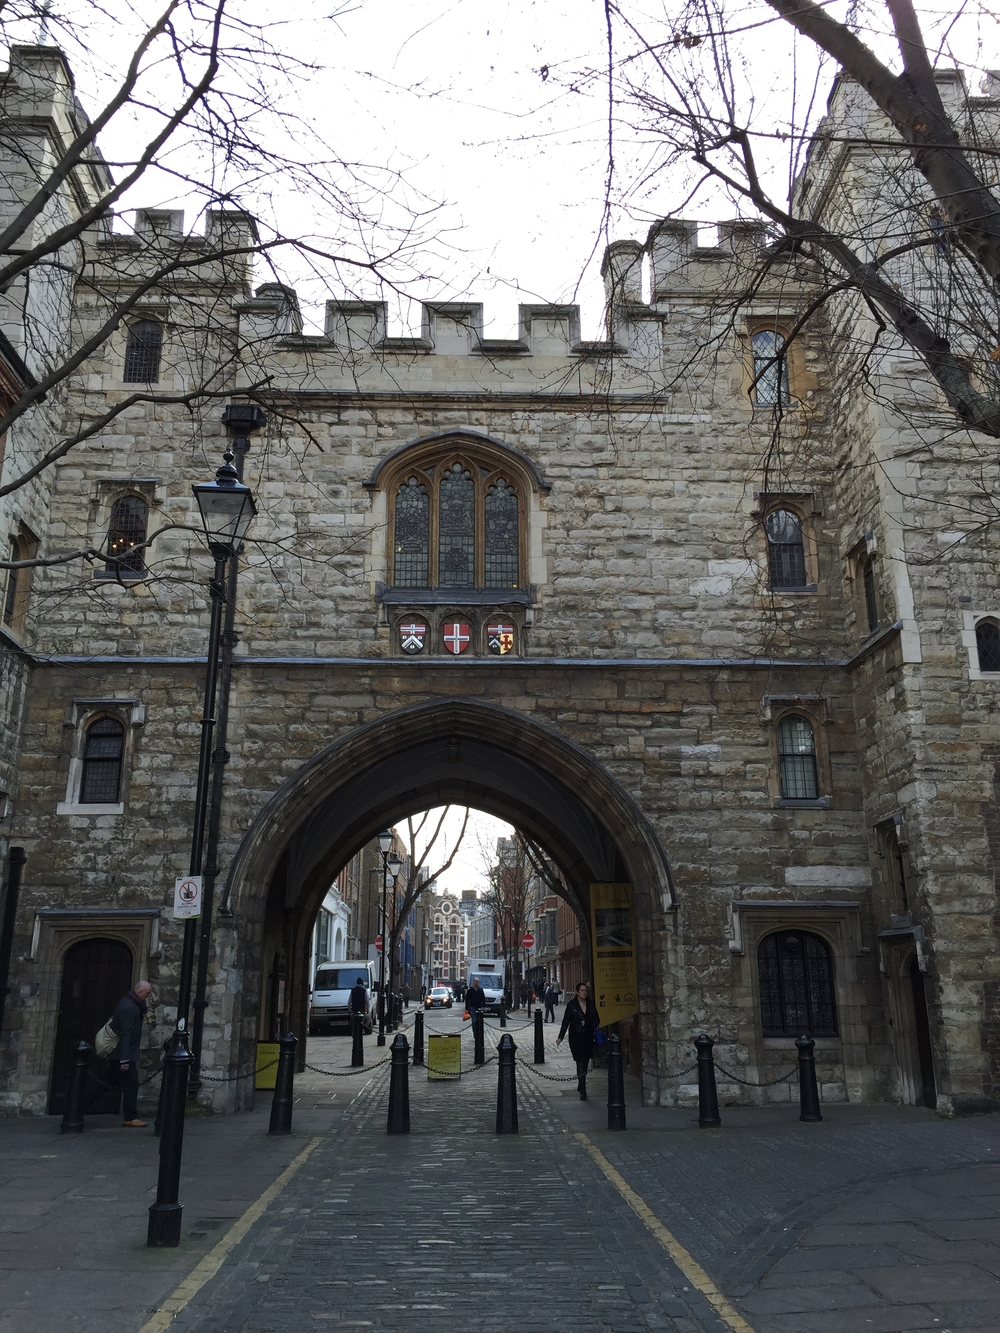 SAINT-JOHN'S-GATE-CLERKENWELL-THE-GREAT-WORK-jessewaugh.com-0.jpg